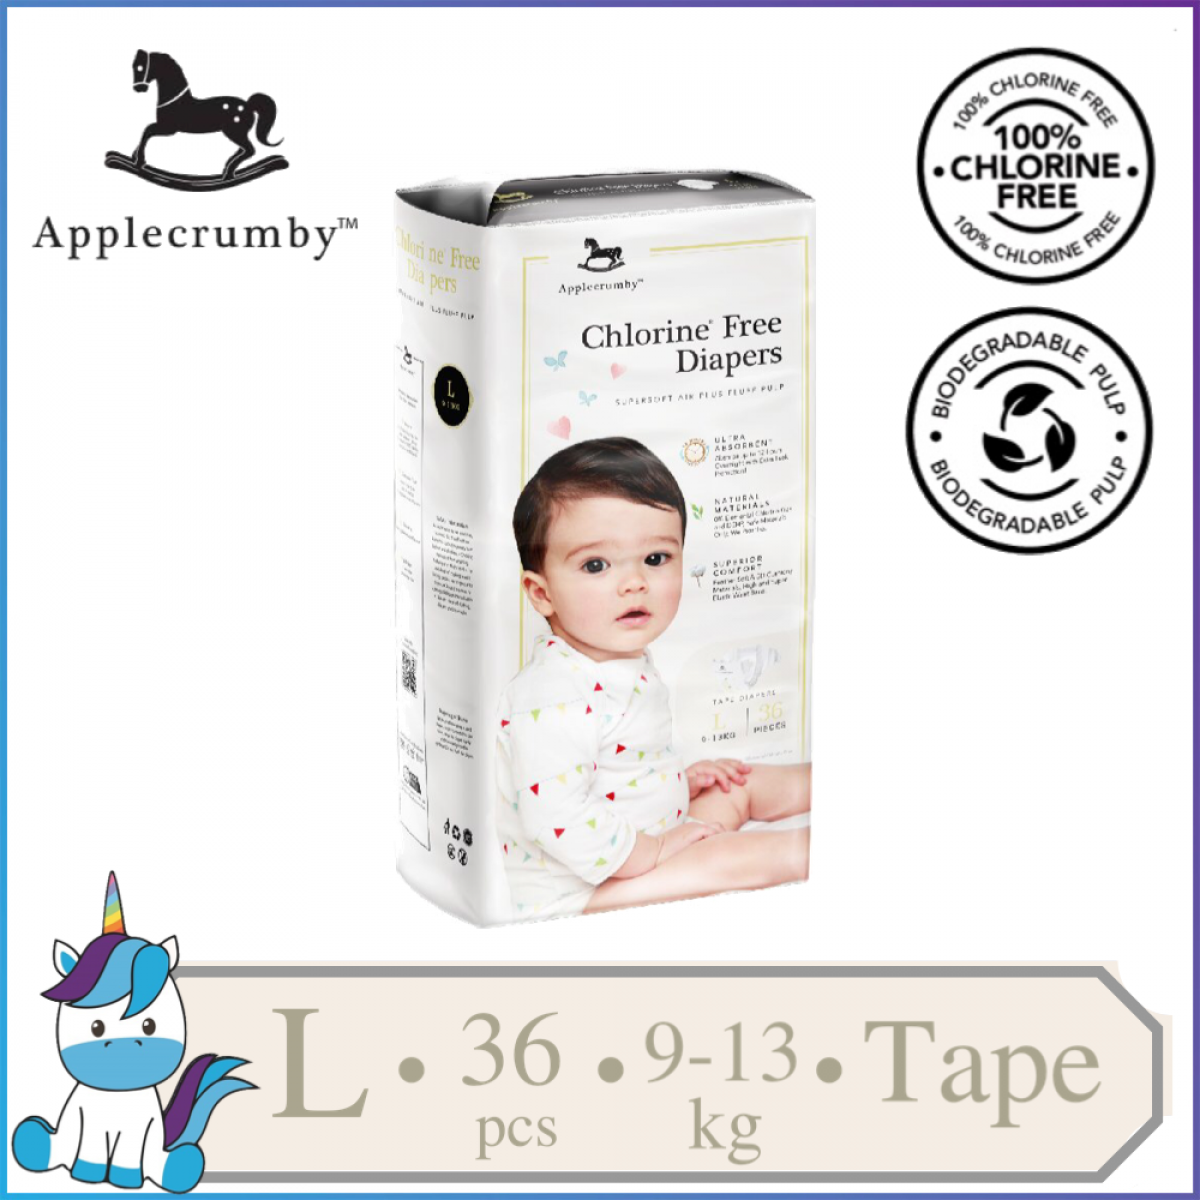 Applecrumby™ Chlorine Free Premium Baby Diapers Tape Size L || 36 pieces (9-13kg)